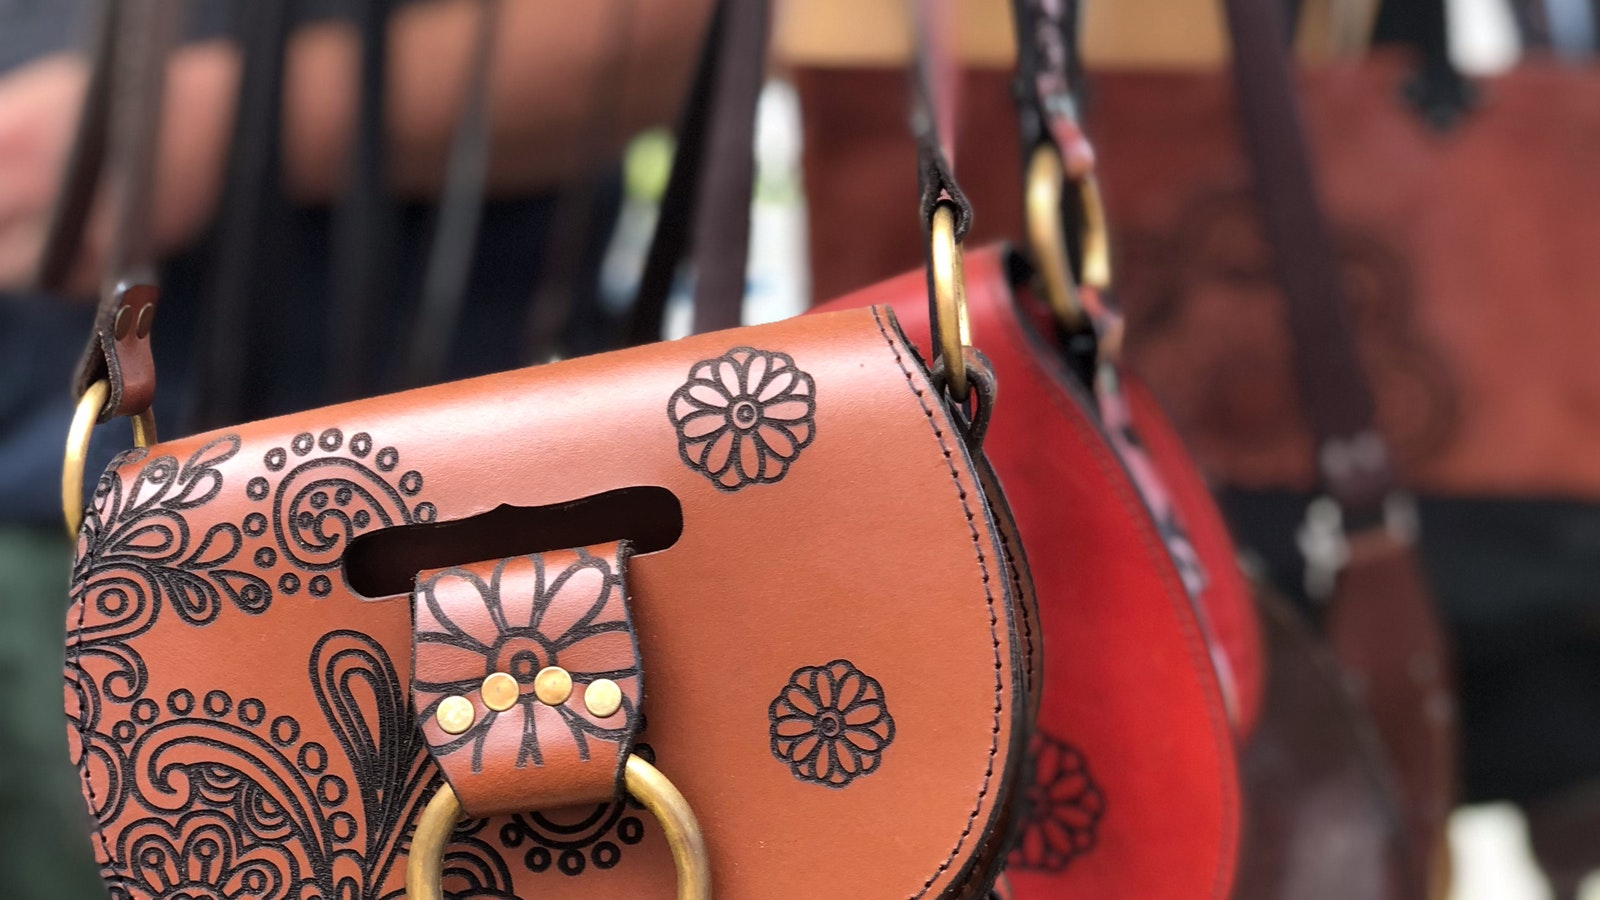 You can always find a new bag at the markets - these ones are handmade leather